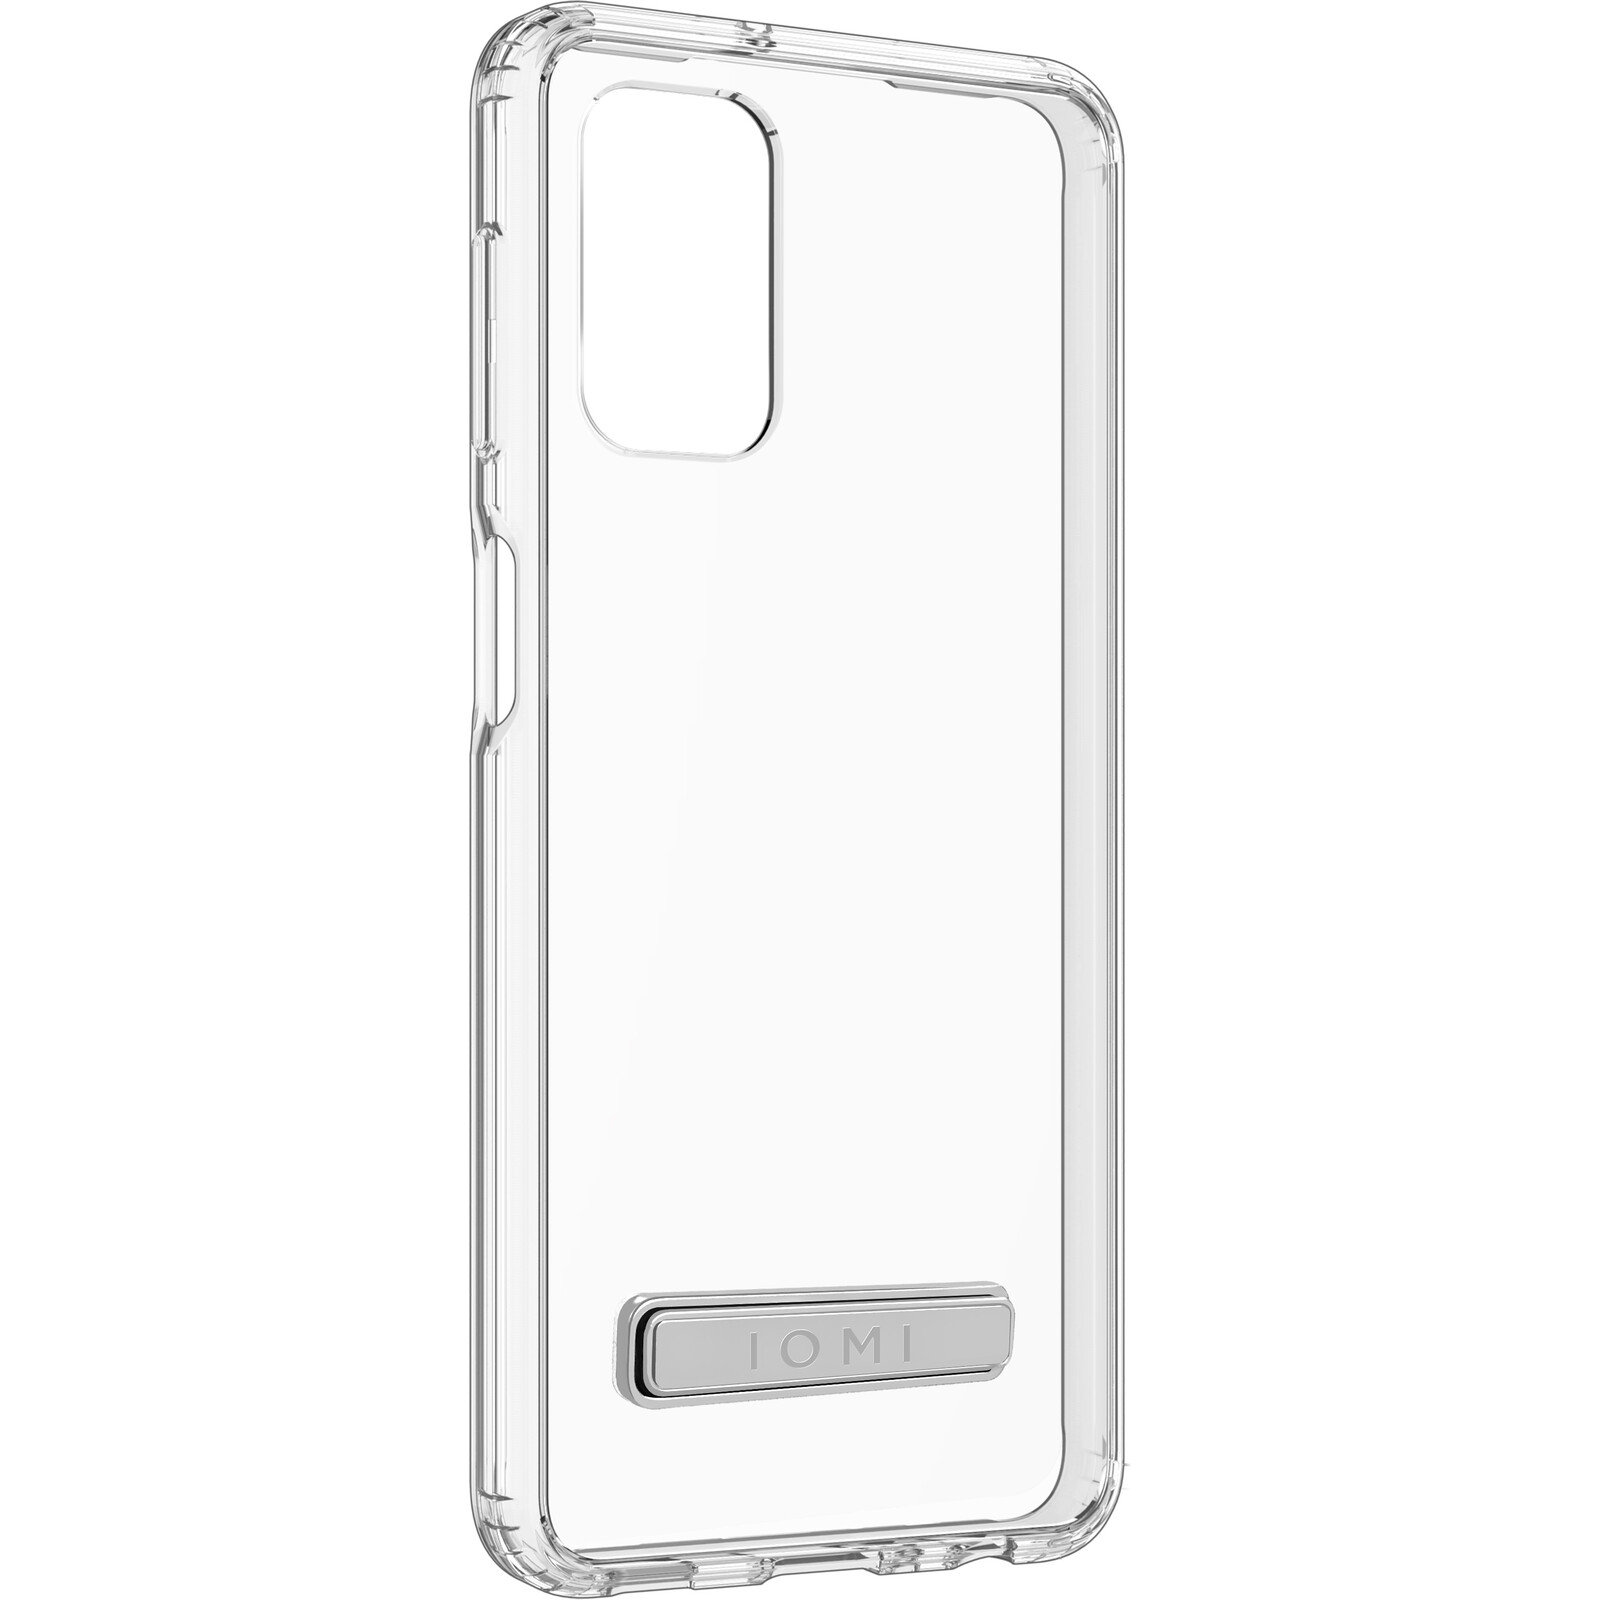 IOMI Backcover Shockproof Stand Samsung Galaxy A32 5G clear